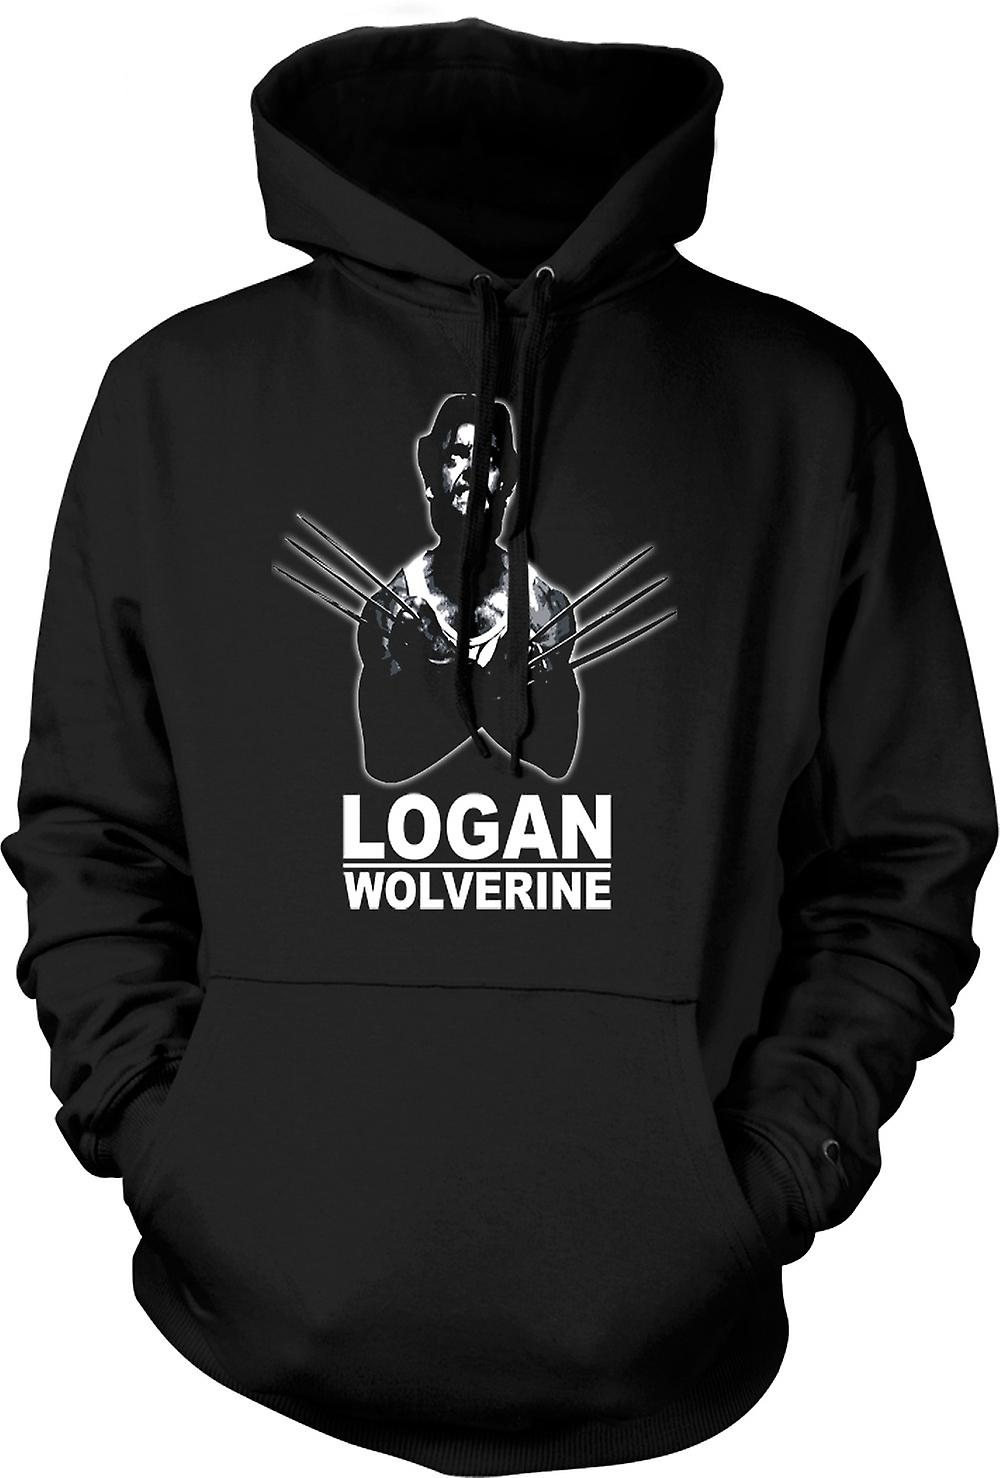 Mens Hoodie - Logan Wolverine - X - Men - Comics